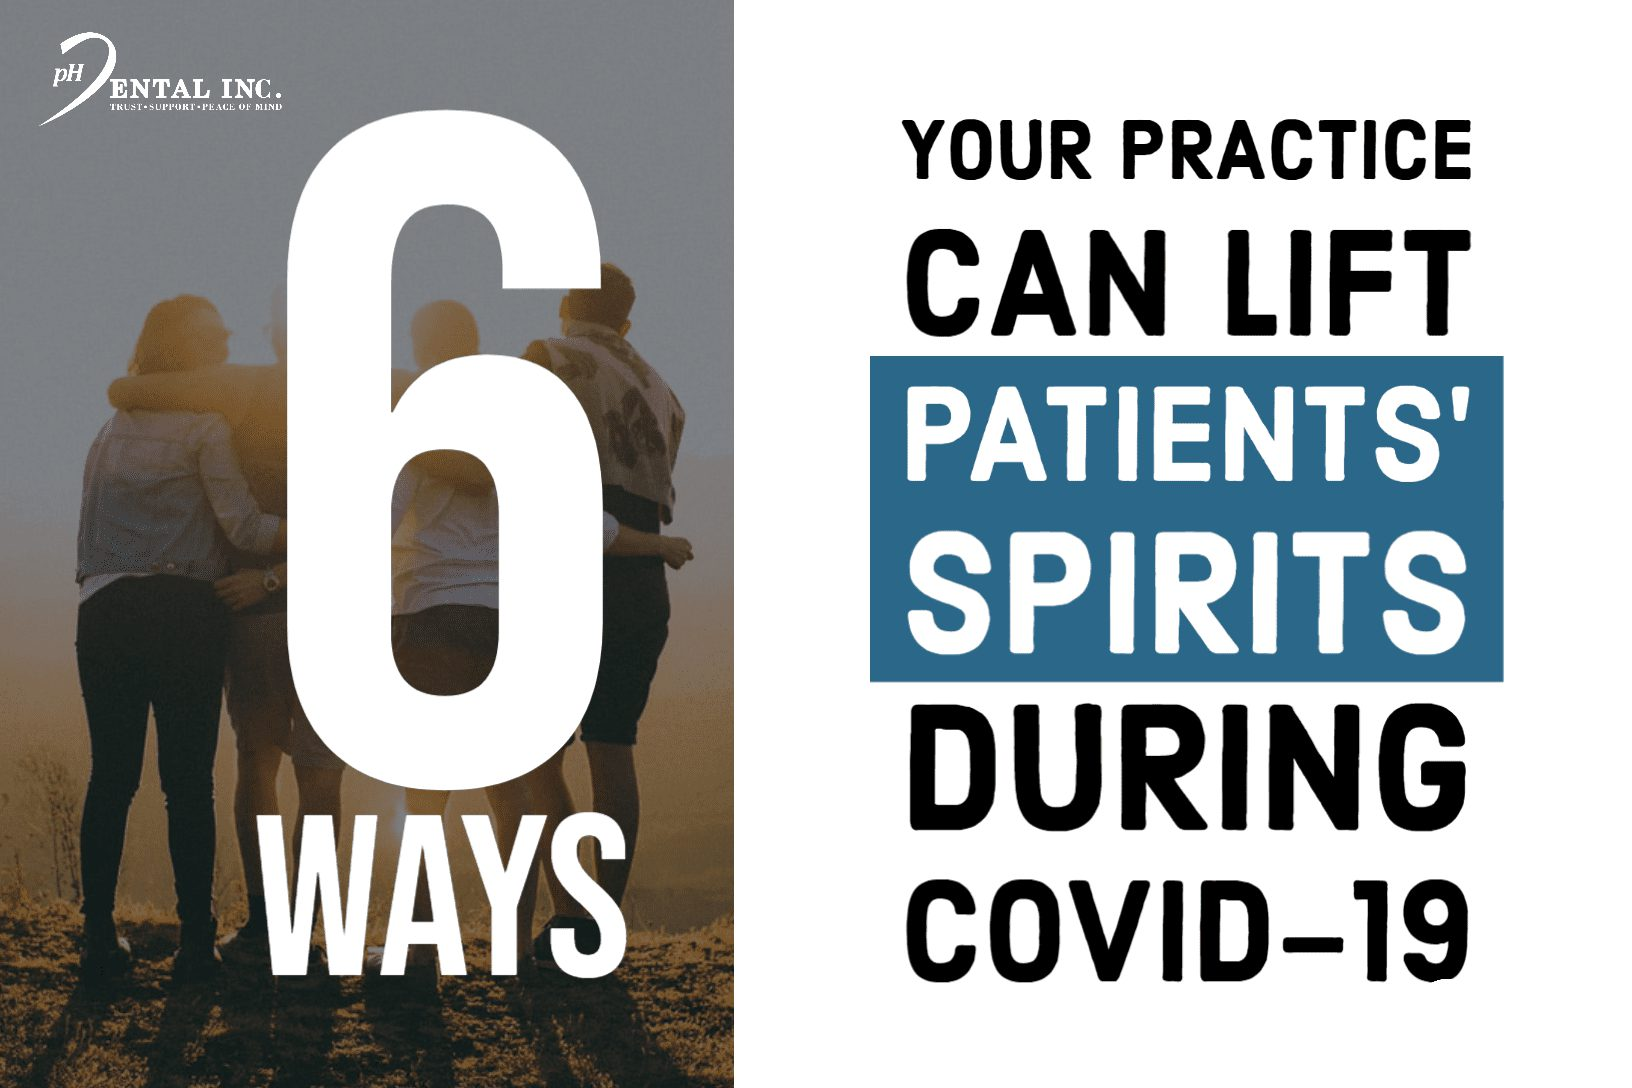 6 ways your practice can lift patients spirits this pandemic featured image